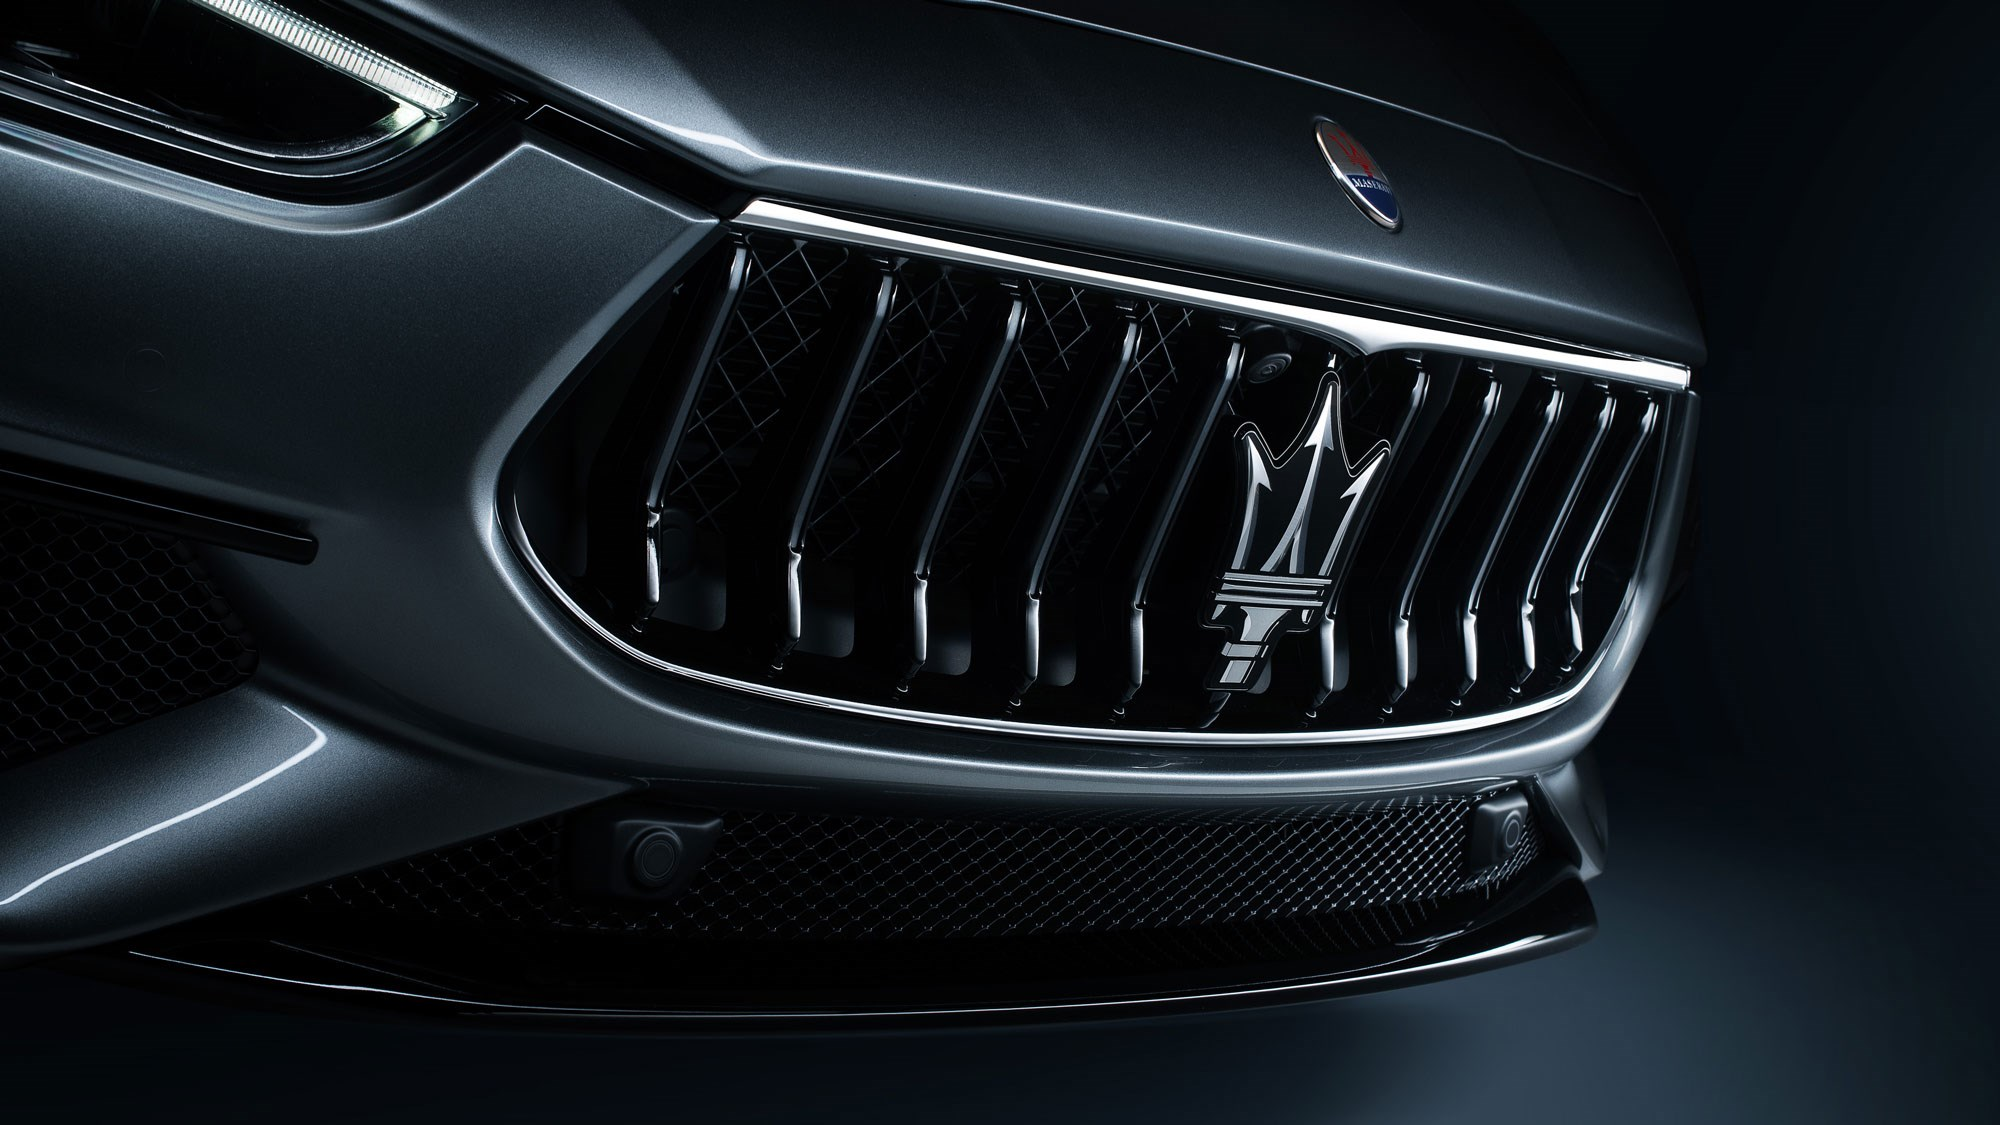 Maserati Just Unveiled Its First Electrified Car, the 330 HP Ghibli Hybrid